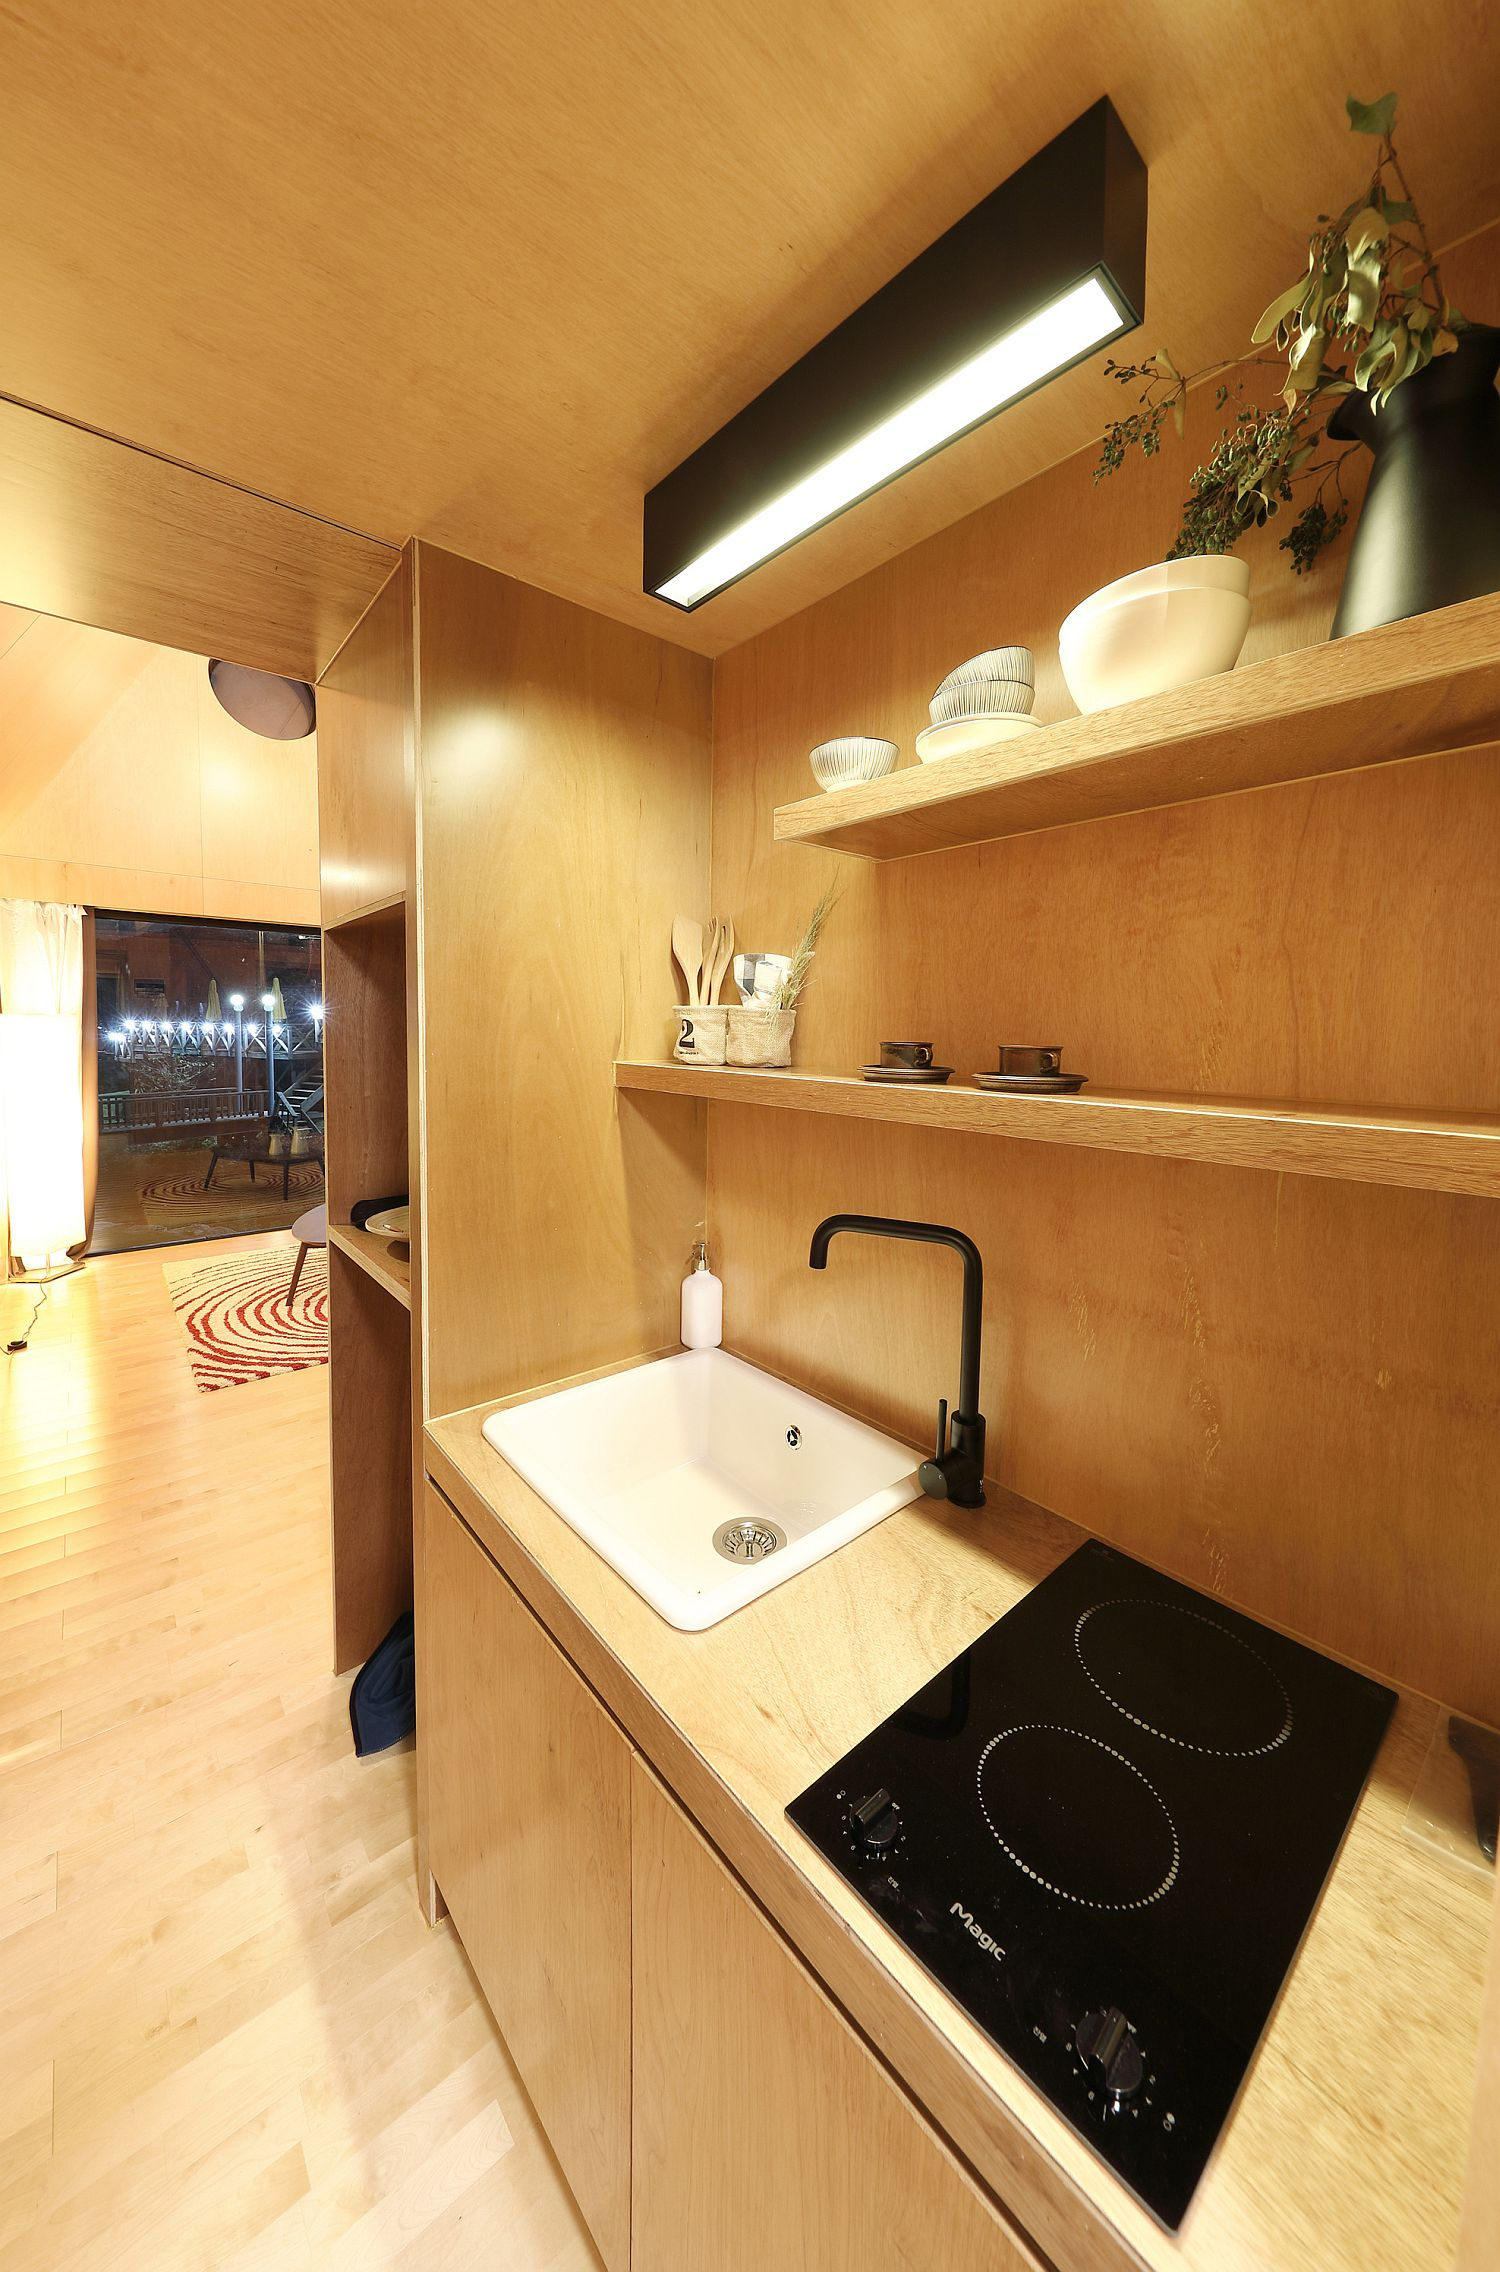 Kitchen of the tiny house with wooden shelves and smart cabinets